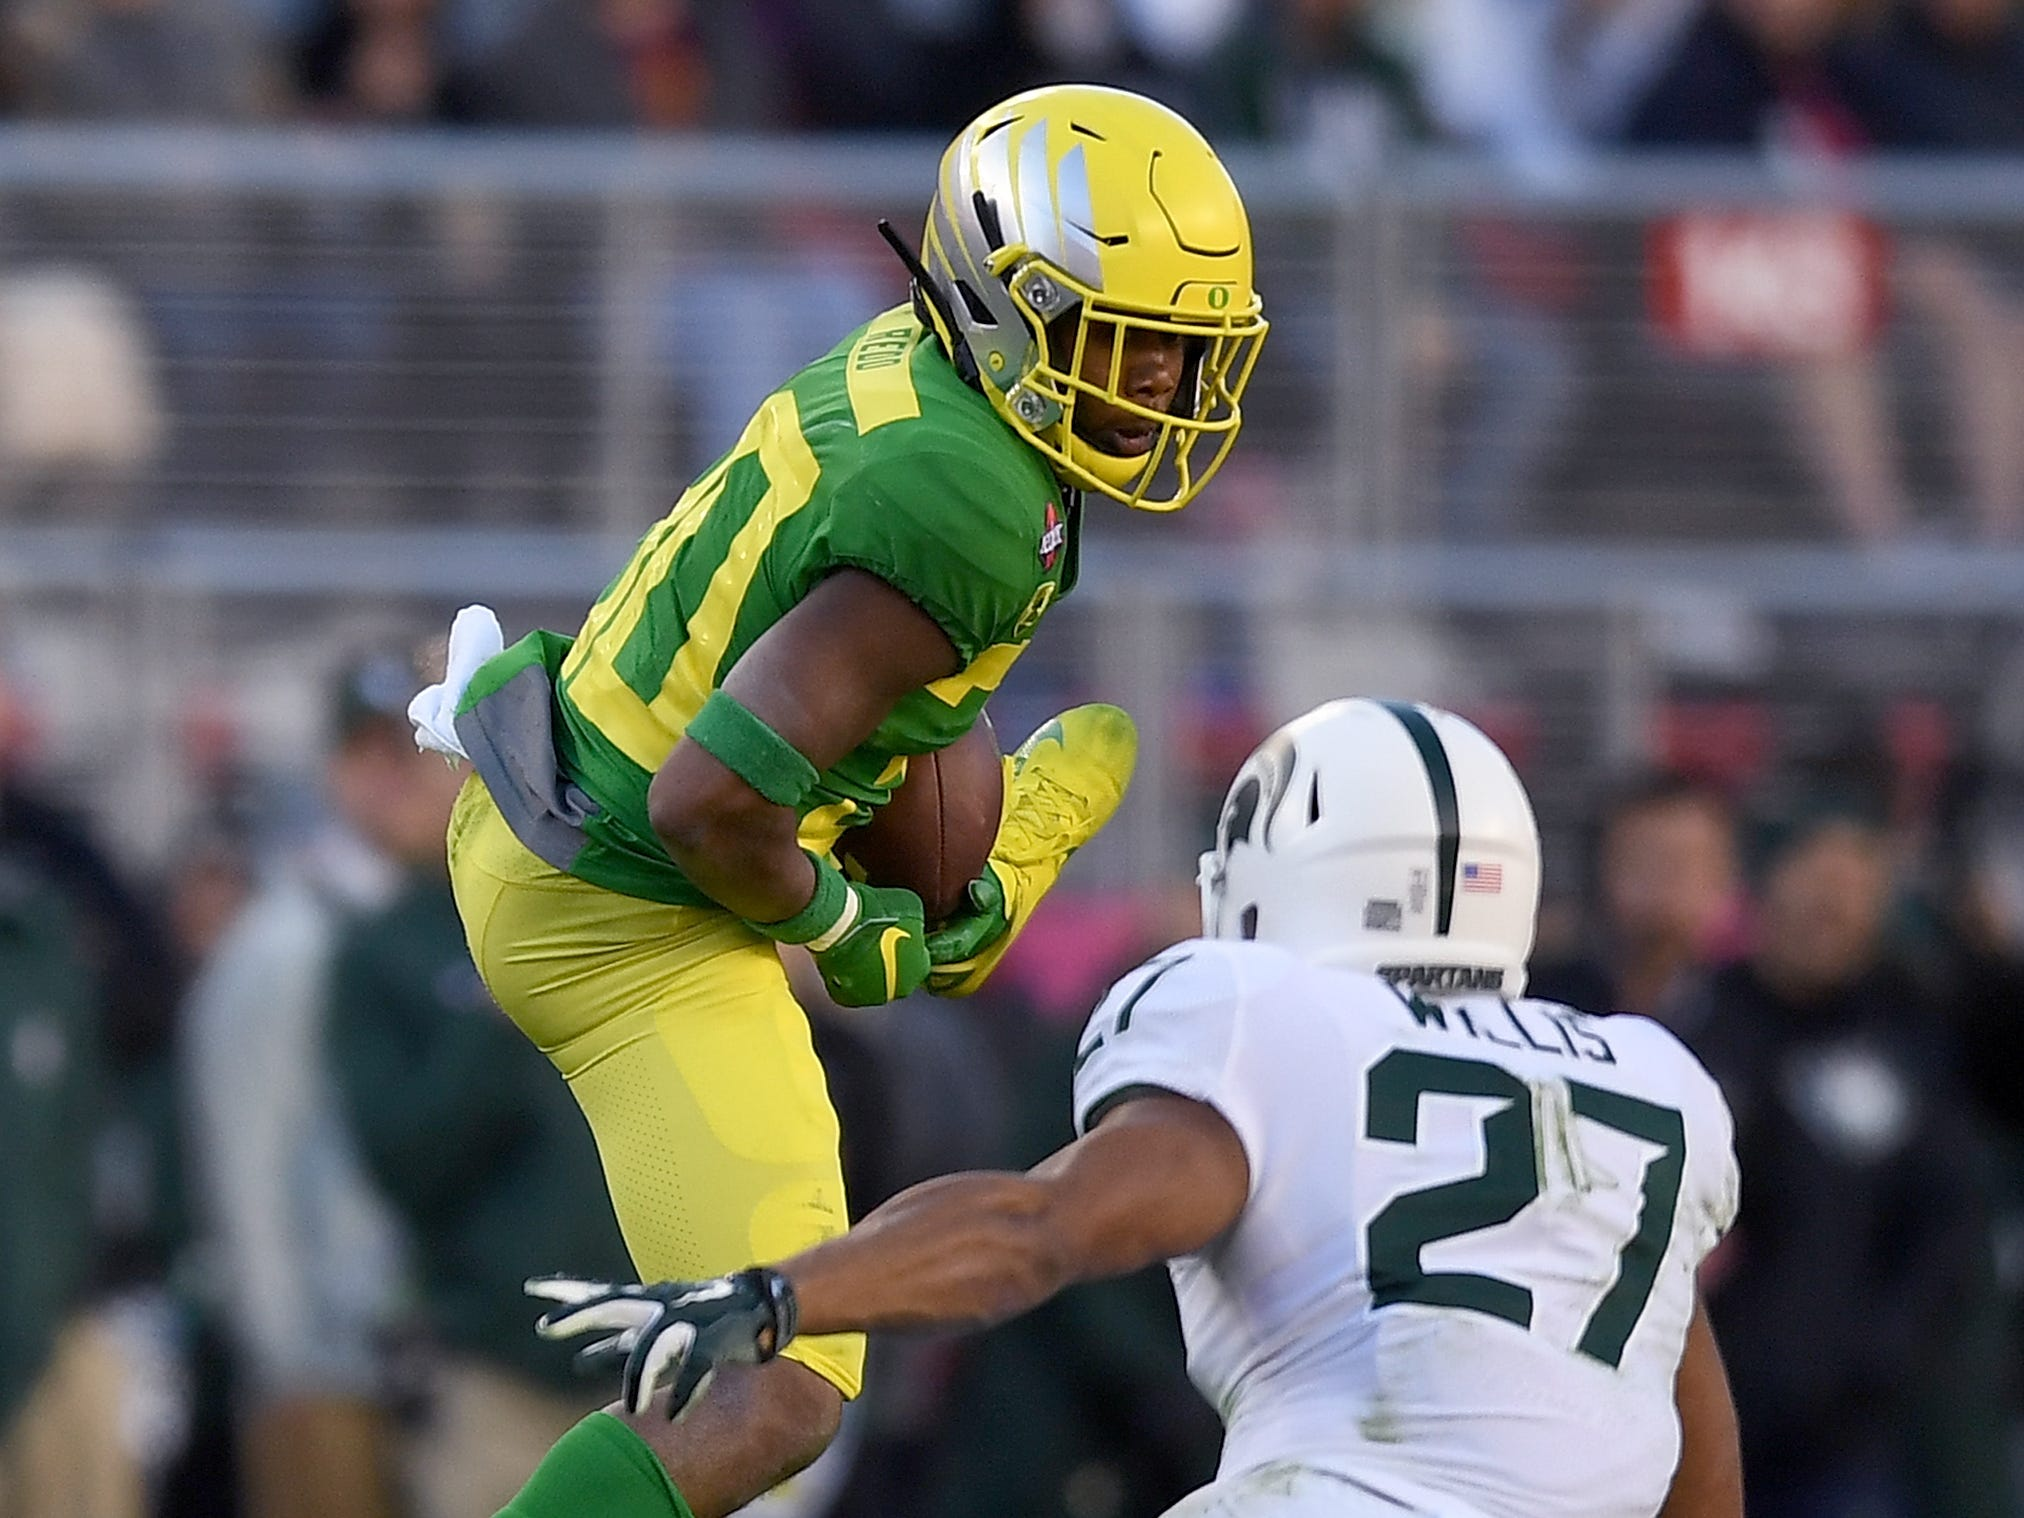 Jaylon Redd #30 of the Oregon Ducks catches a pass over Khari Willis #27 of the Michigan State Spartans during the second half of the Redbox Bowl at Levi's Stadium on December 31, 2018 in Santa Clara, California.